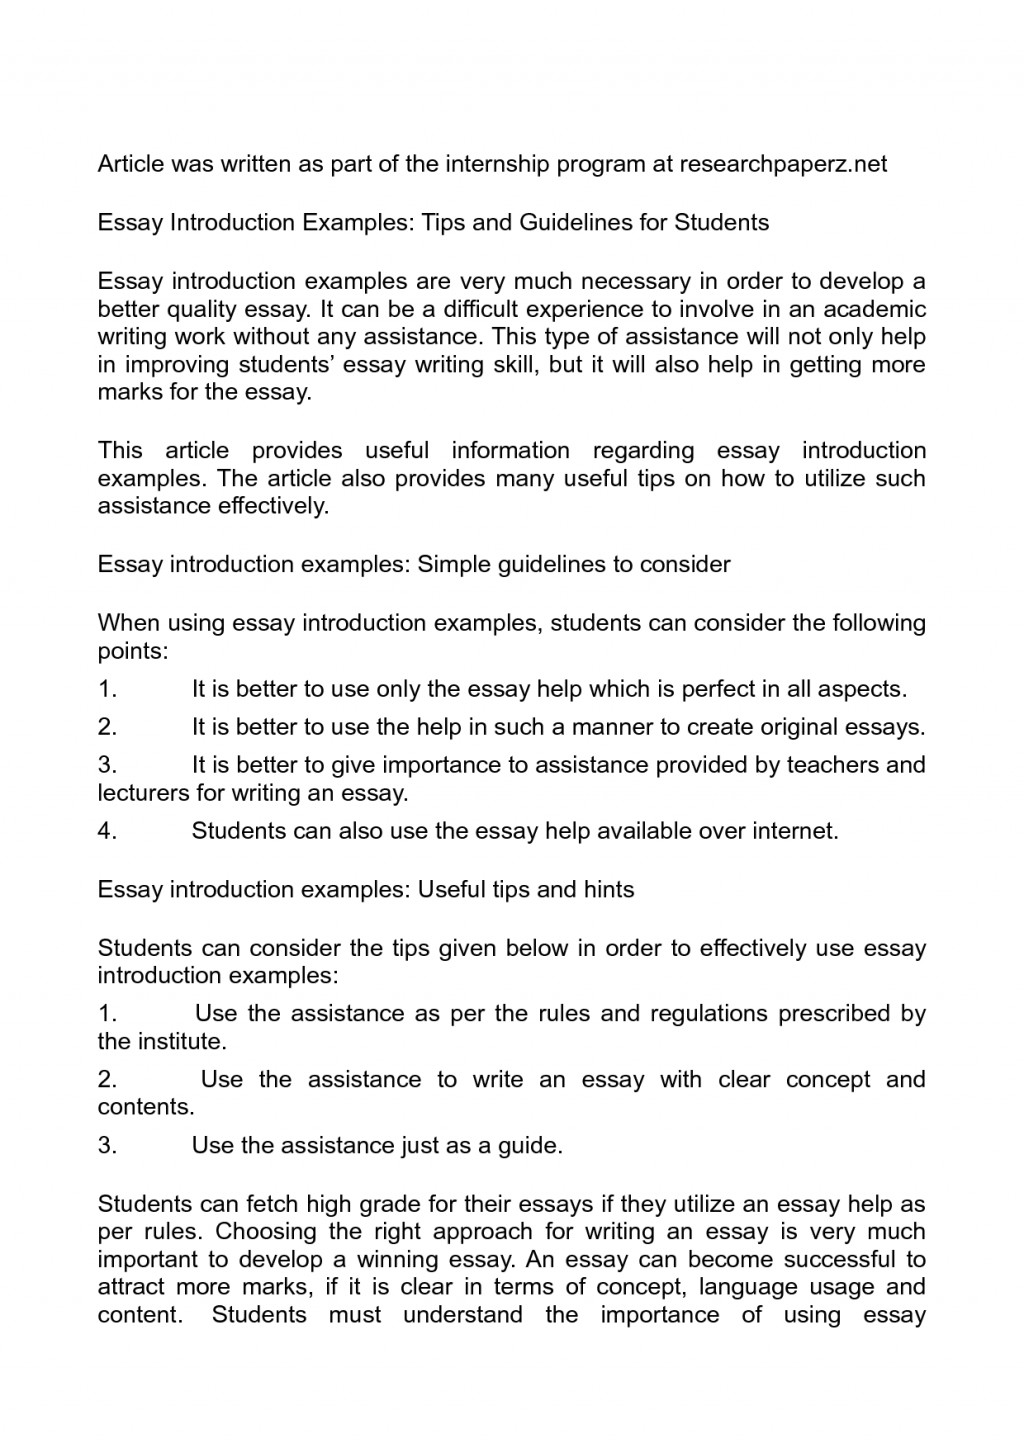 013 How To Make Good Hook For An Essay Eyx5t6okob Outstanding A Catchy Narrative Great Large